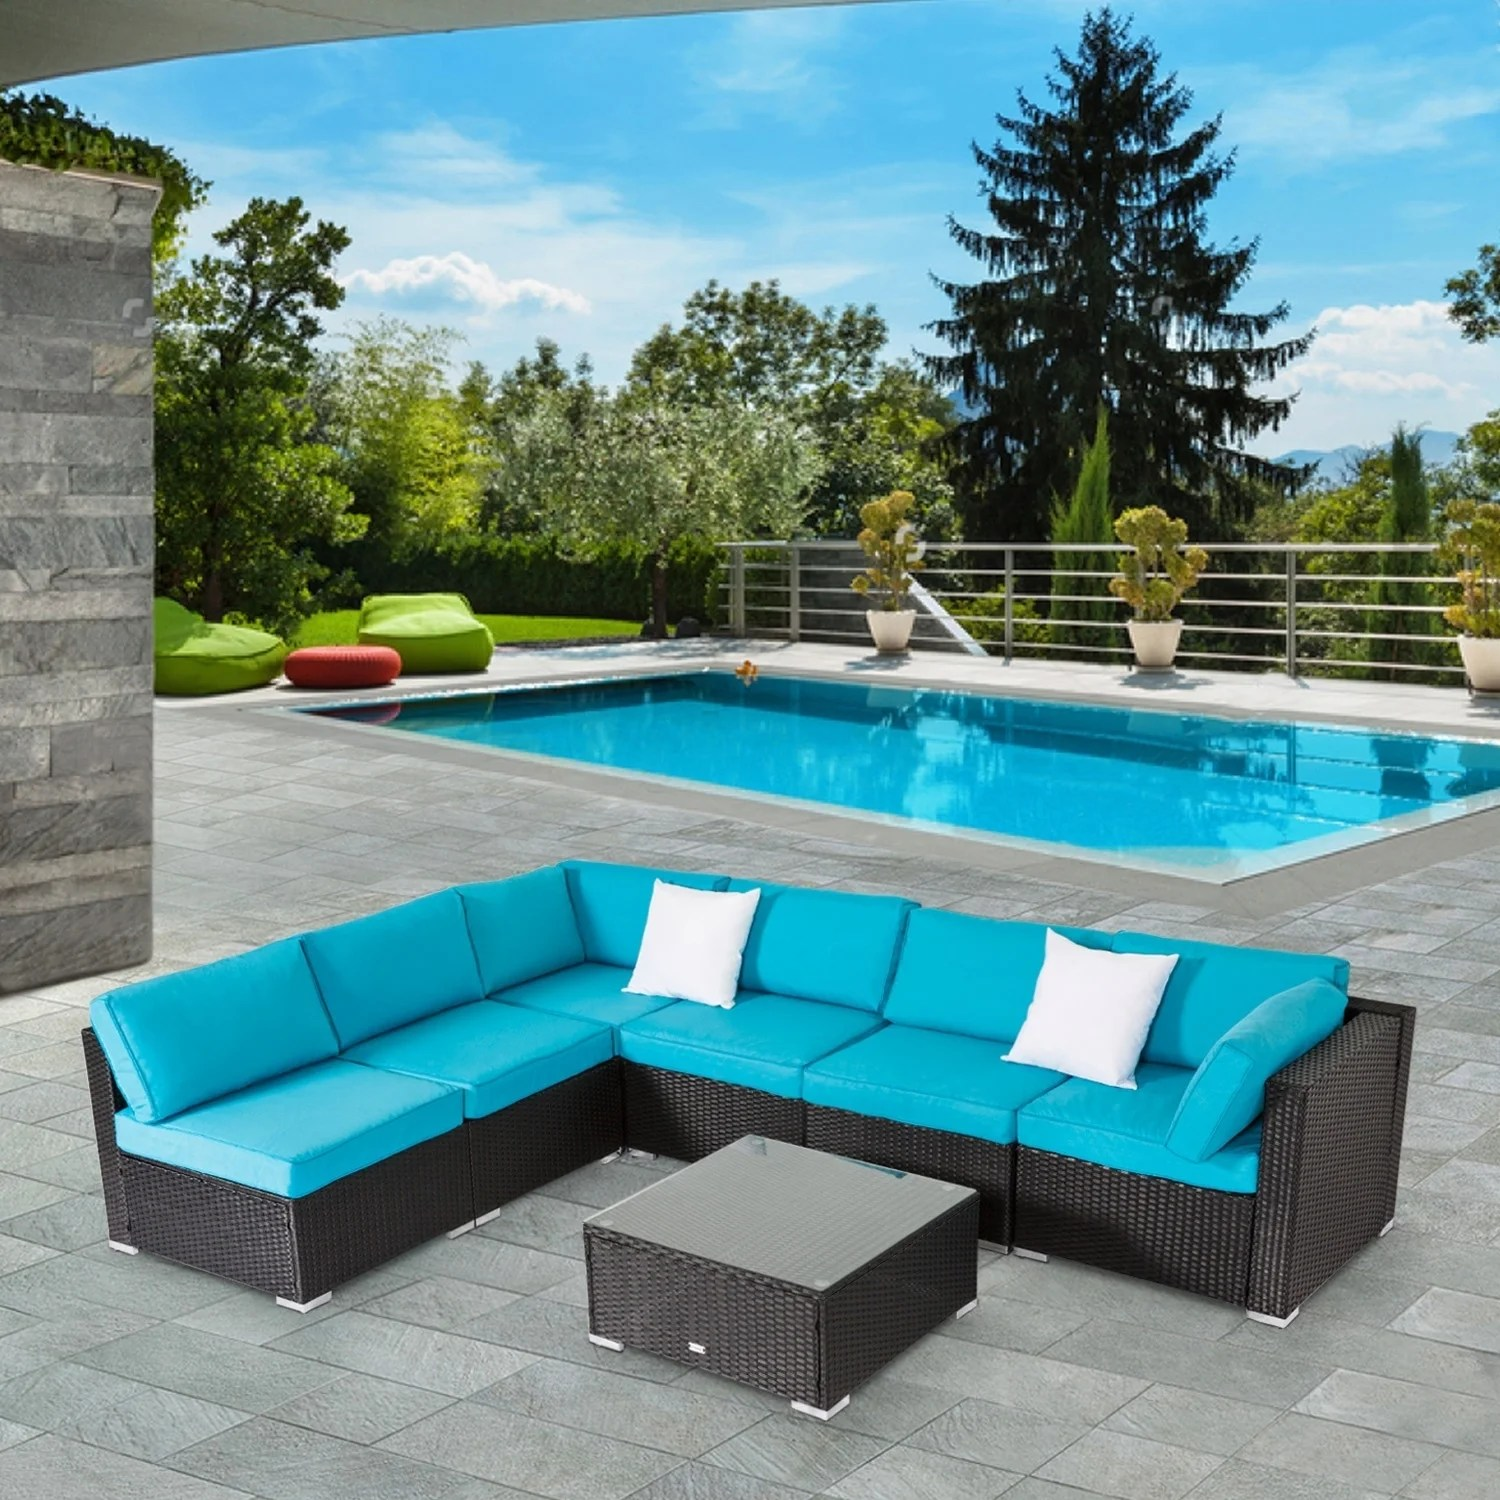 7 Piece Patio Set Kinbor 7 Piece Patio Furniture Set All Weather Outdoor Furniture Sectional Sofa W Cushions